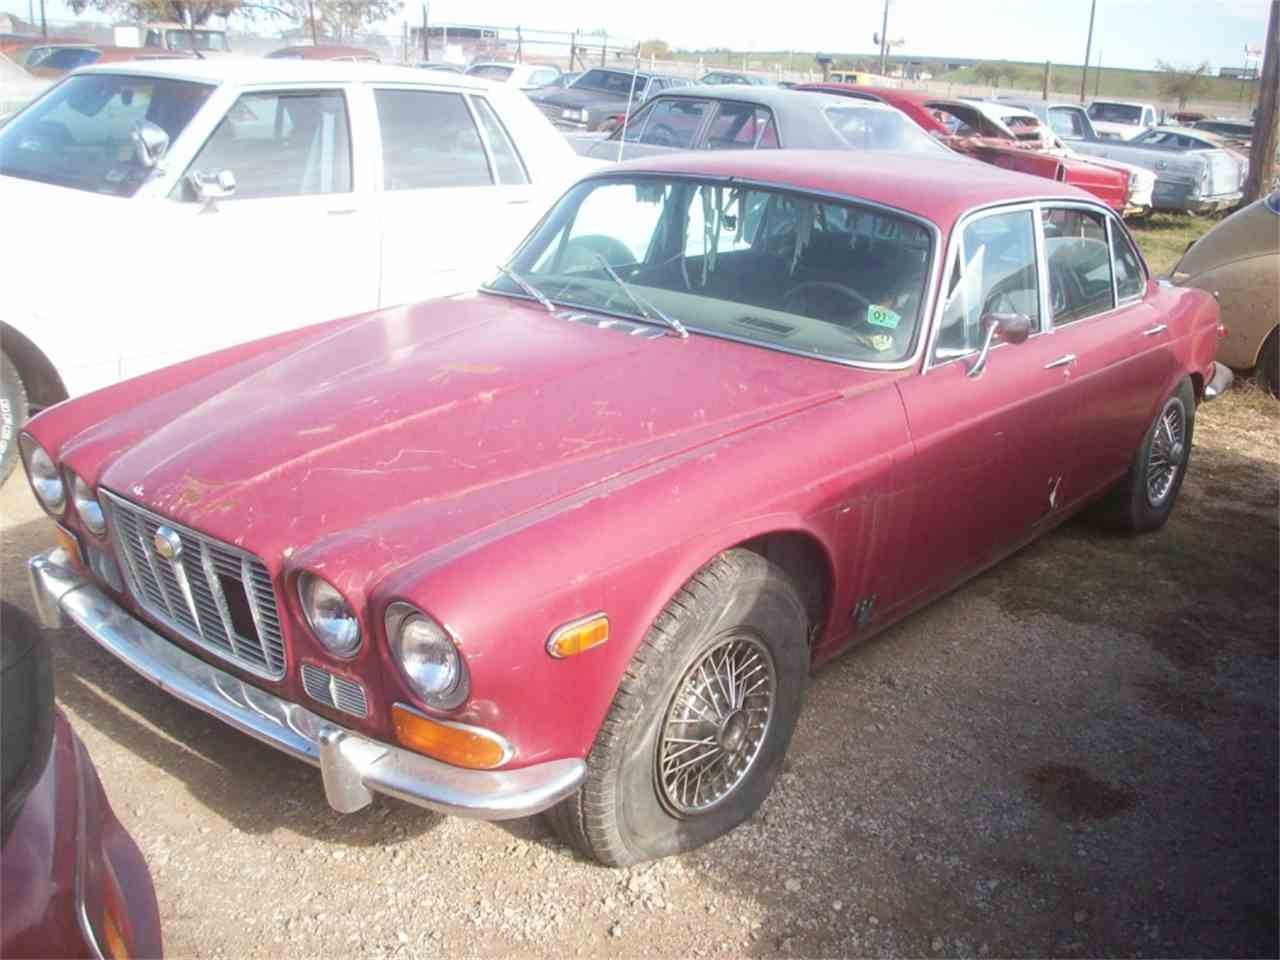 Large Picture of '71 Jaguar XJ6 located in Denton Texas - $2,200.00 - J24P